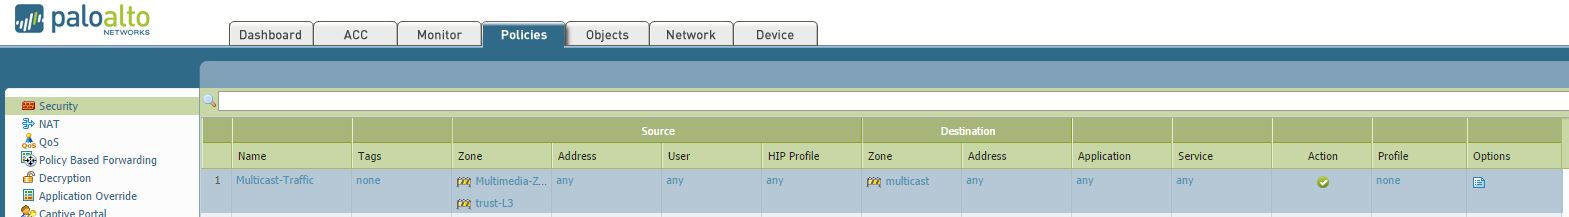 Palo Alto Networks Knowledgebase: How to Facilitate